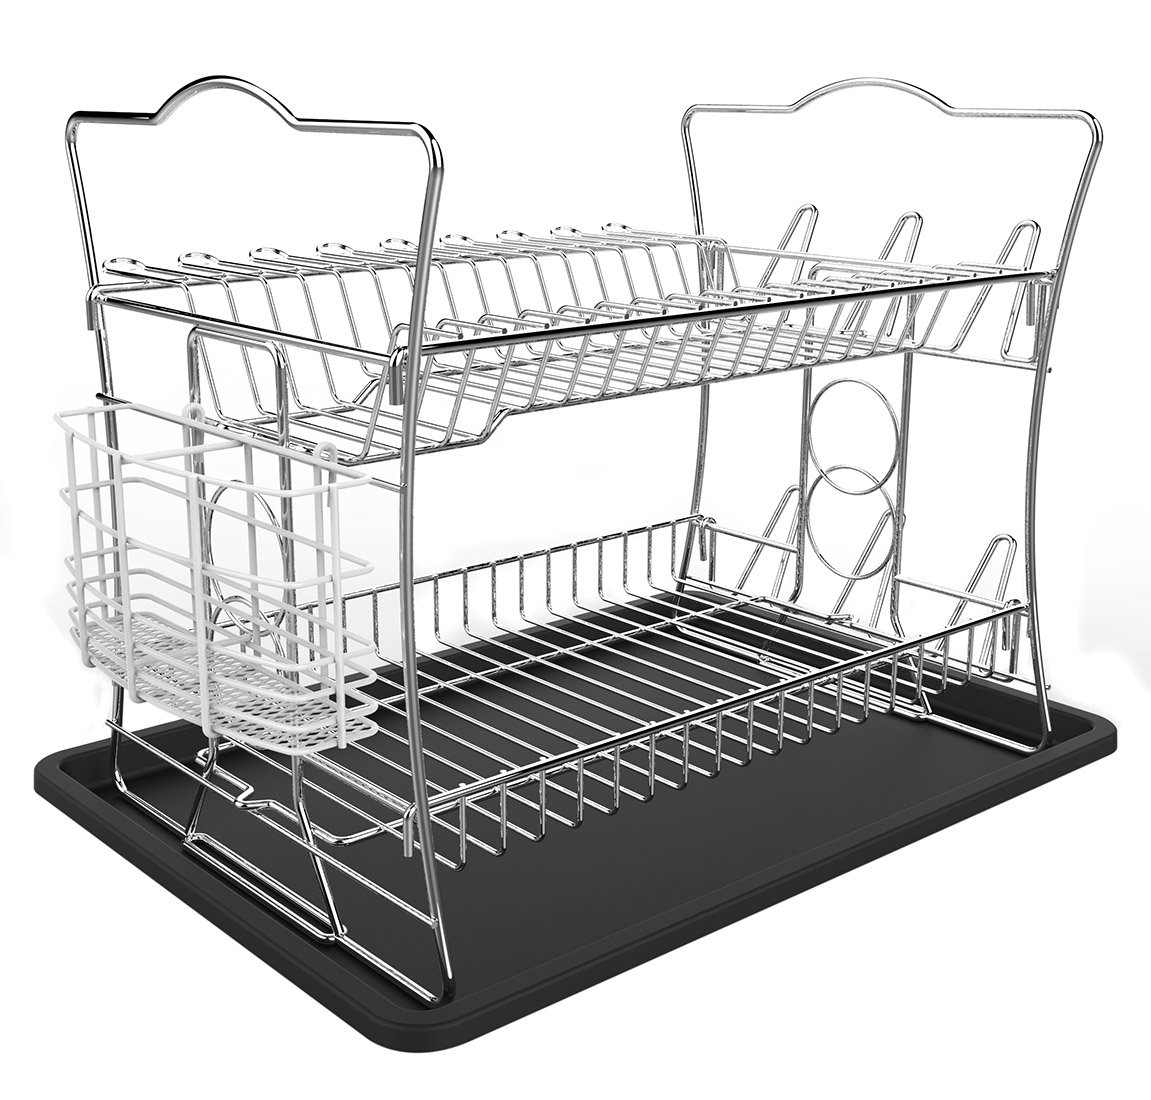 IZLIF 2-Tier Chrome Finish Dish Drying Rack Set and Drainboard with Removable White Utensil Holder Baike DR-301